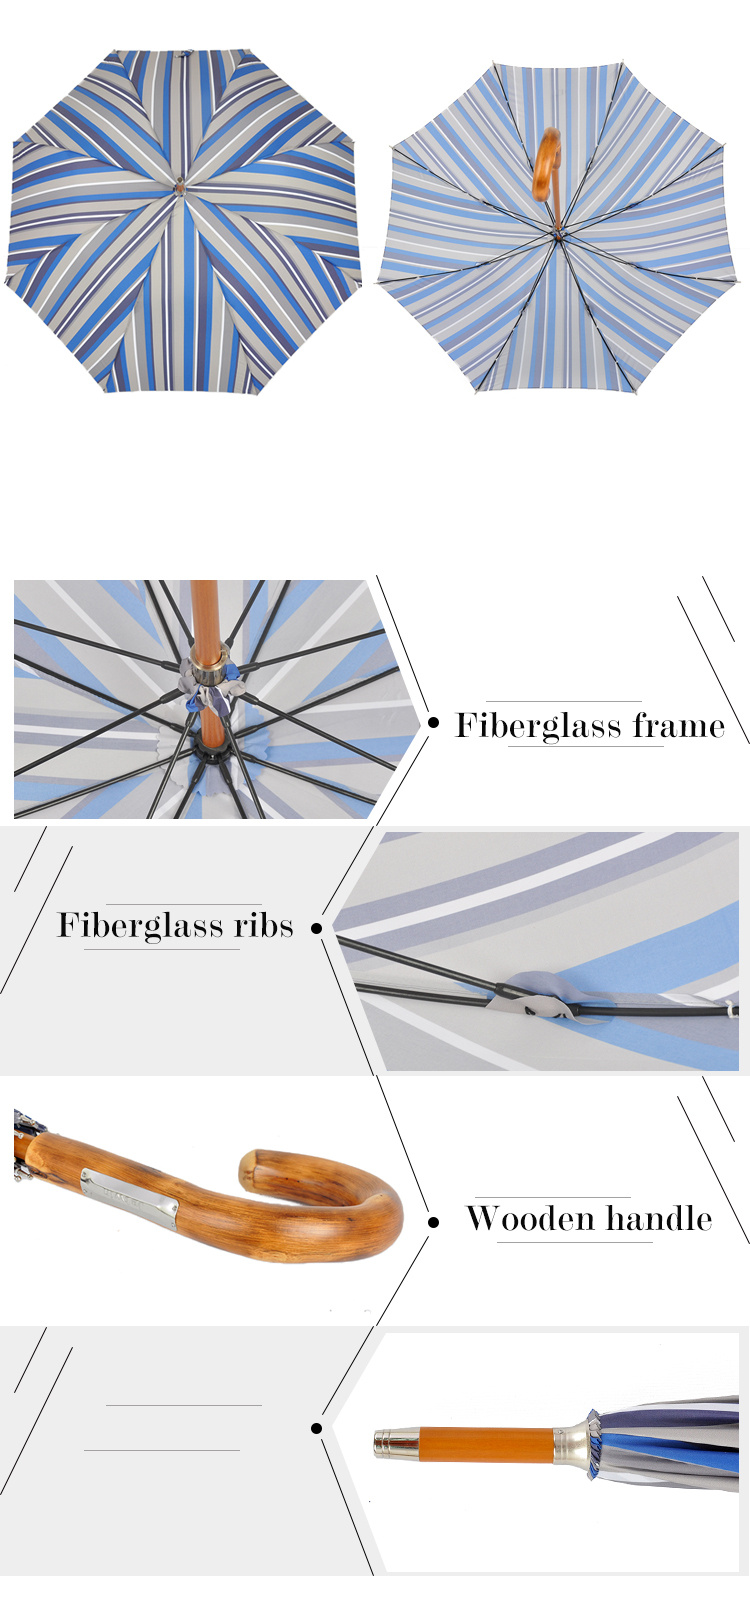 LG-05 high quality luxury wooden handle straight umbrella